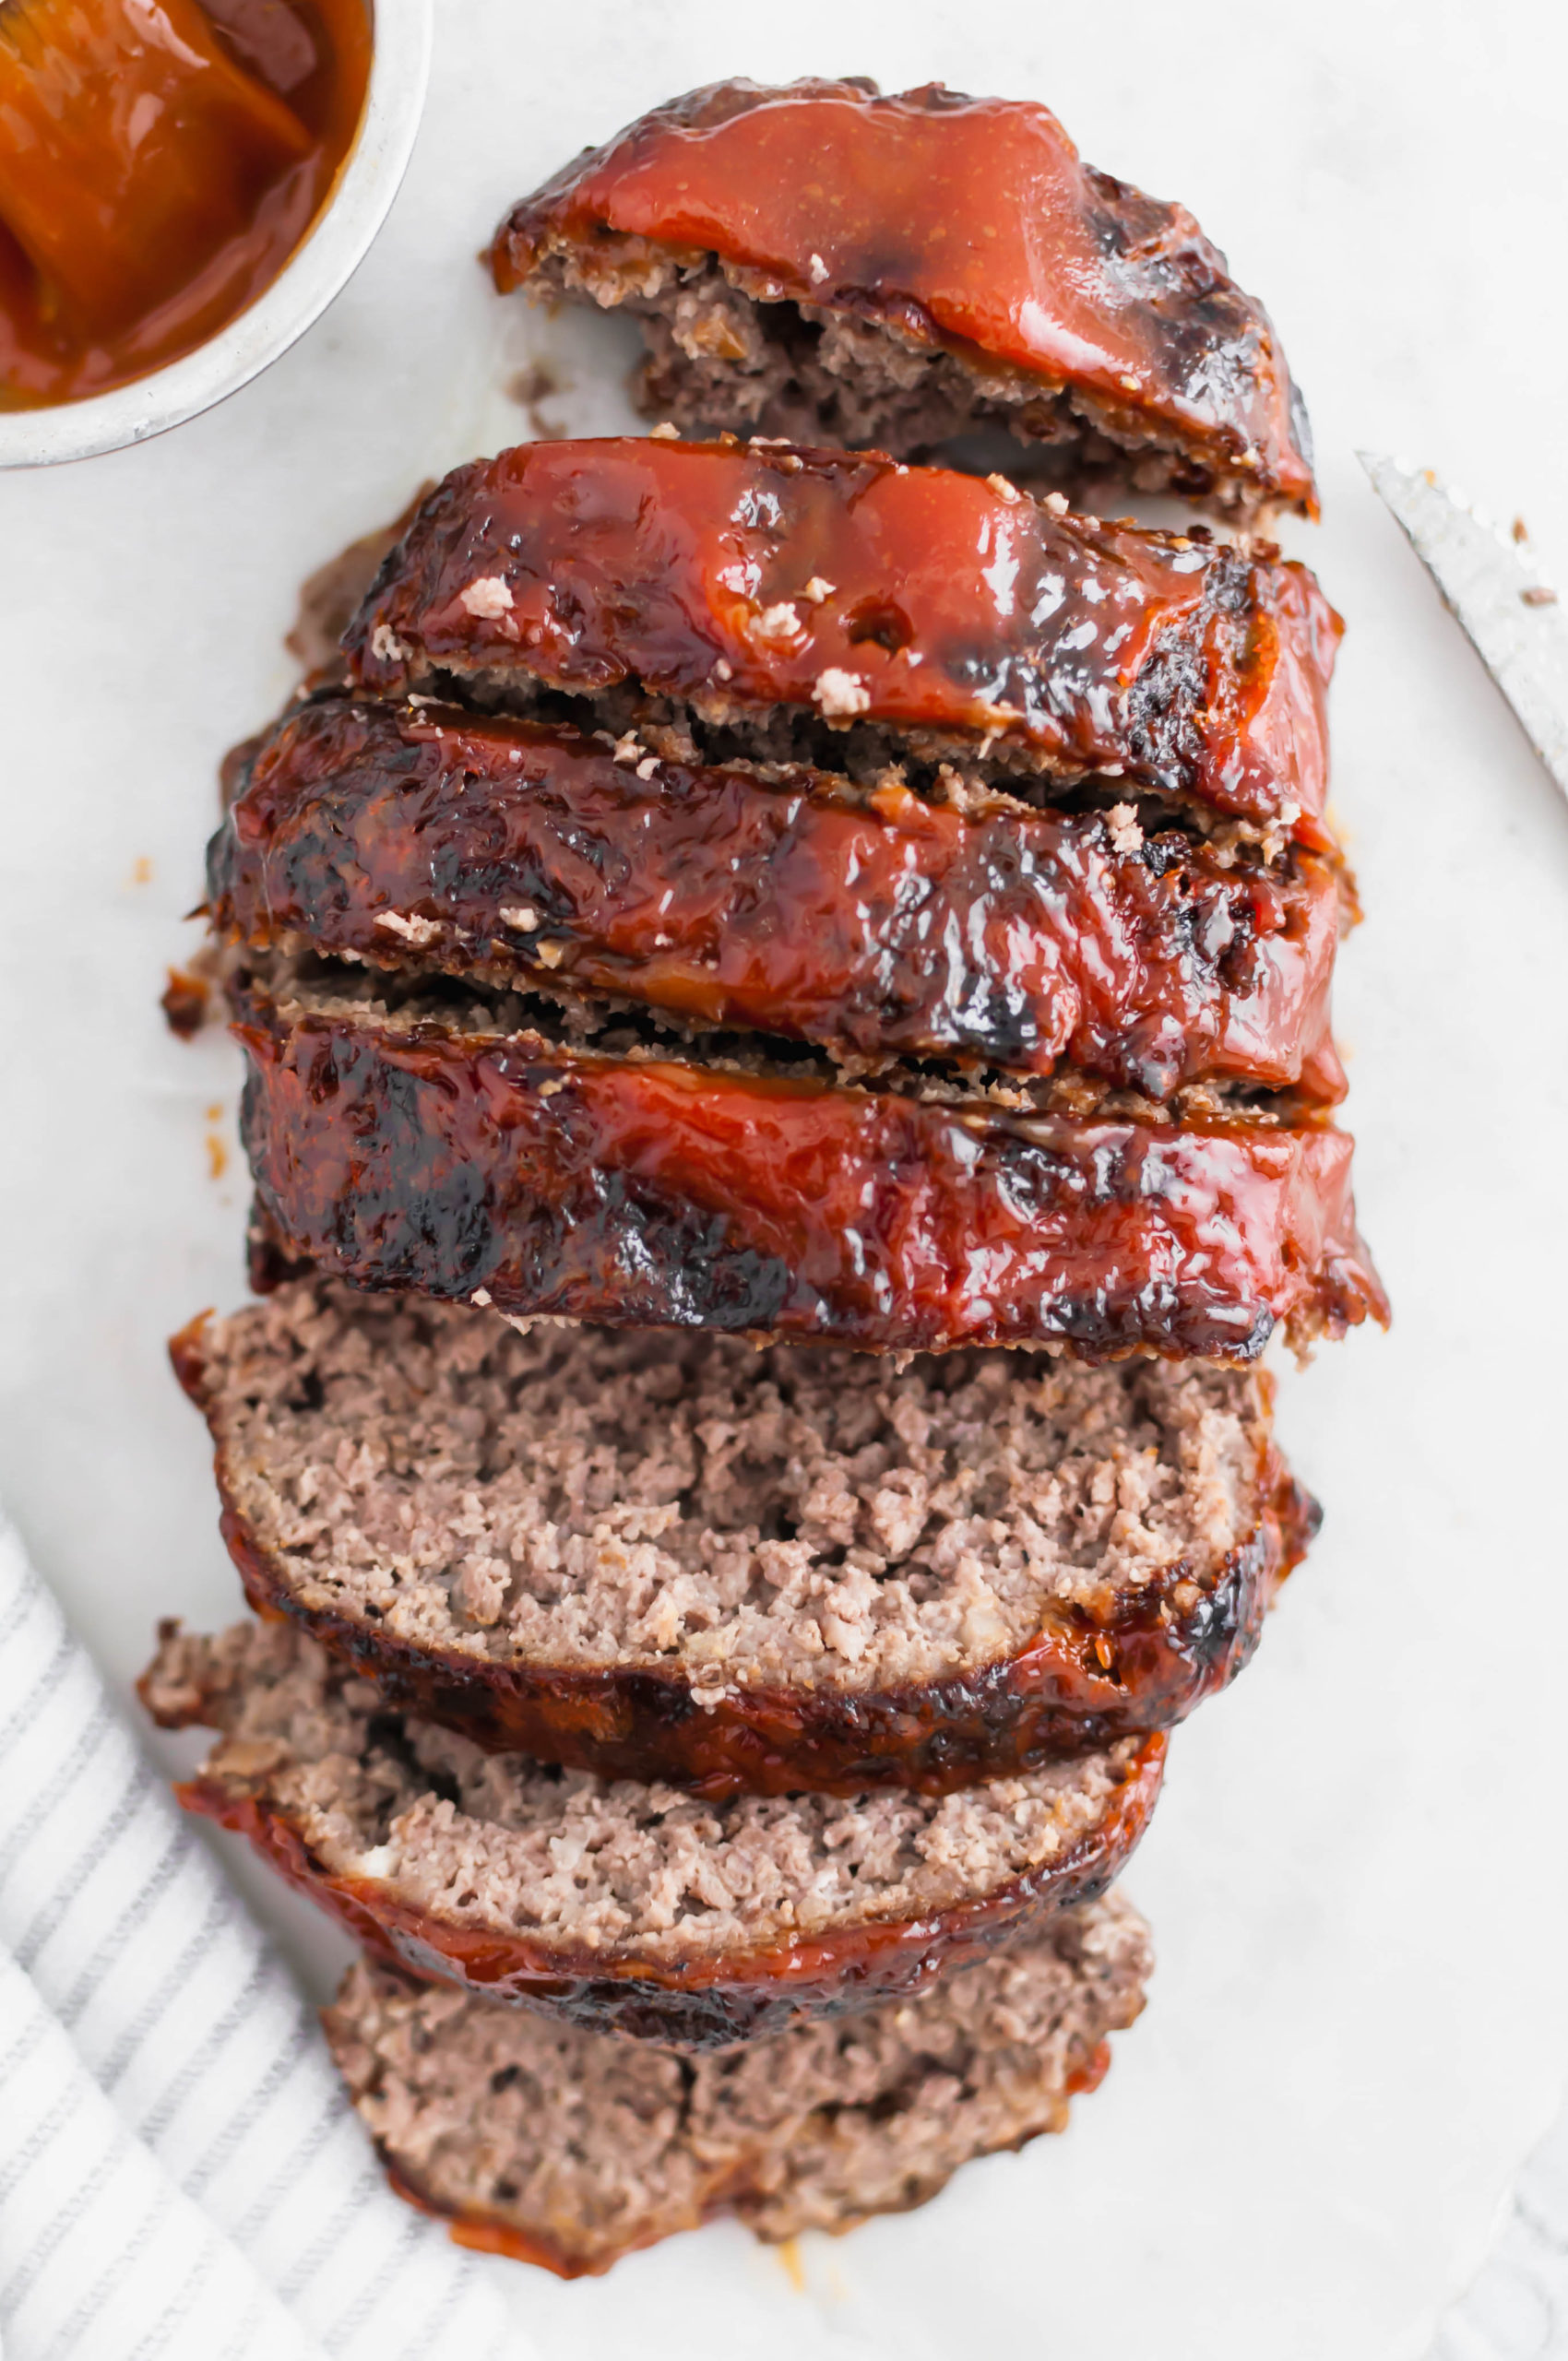 Crispy on the outside and juicy on the inside, this Air Fryer Meatloaf is simple and quick enough for a weeknight meal. Slathered with a delicious glaze to put it over the top.